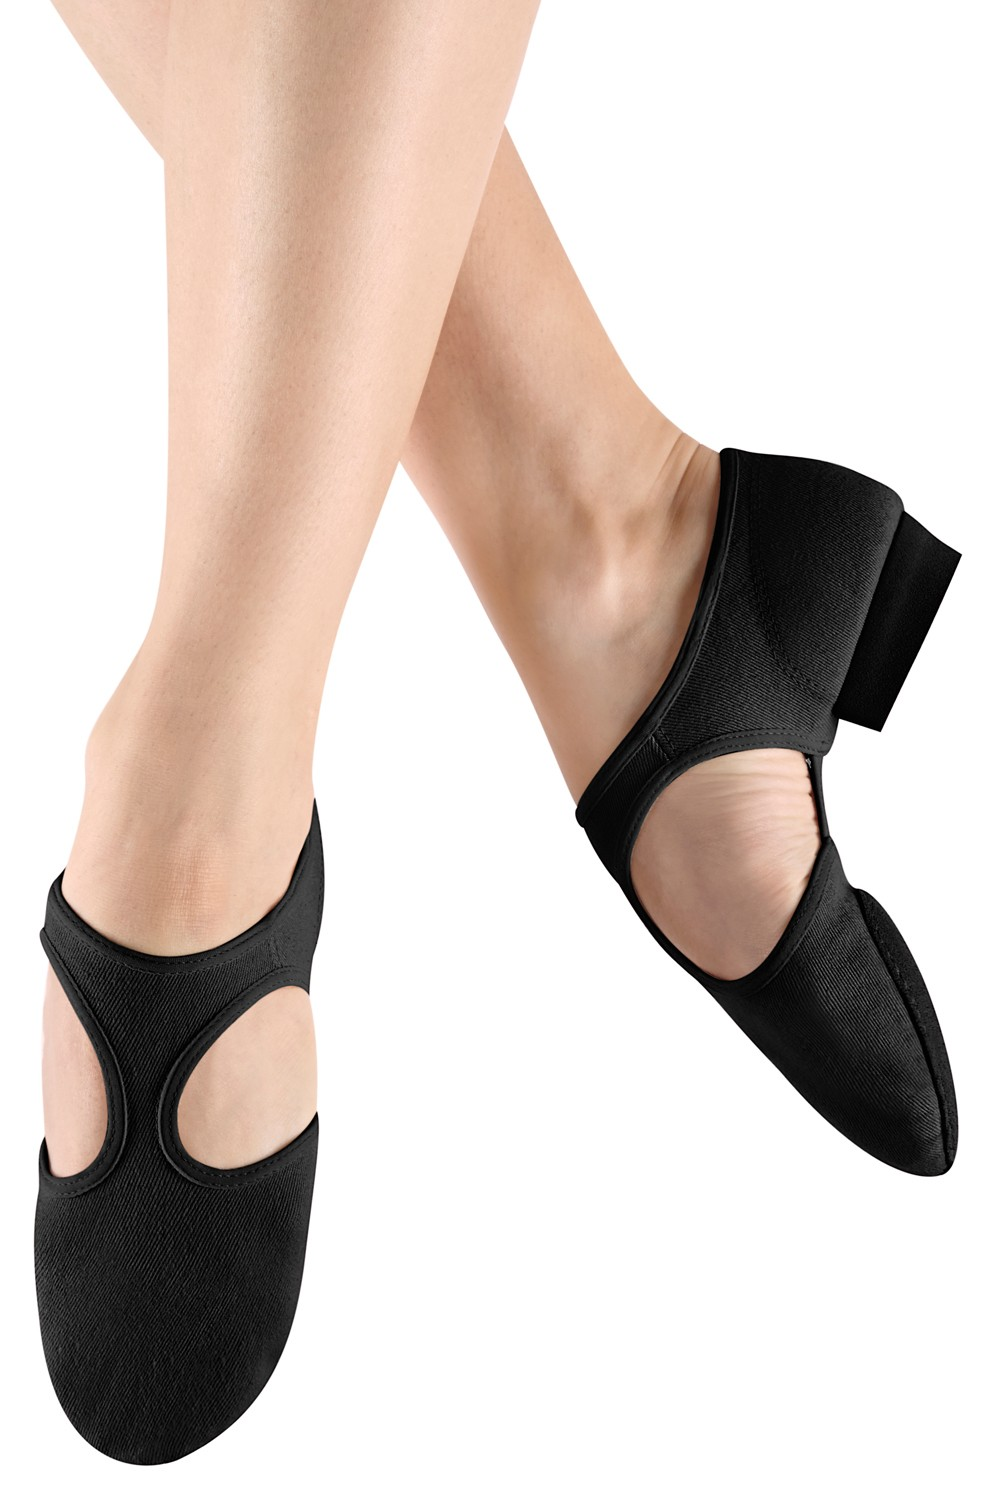 Stretch Grecian Women's Teaching Shoes